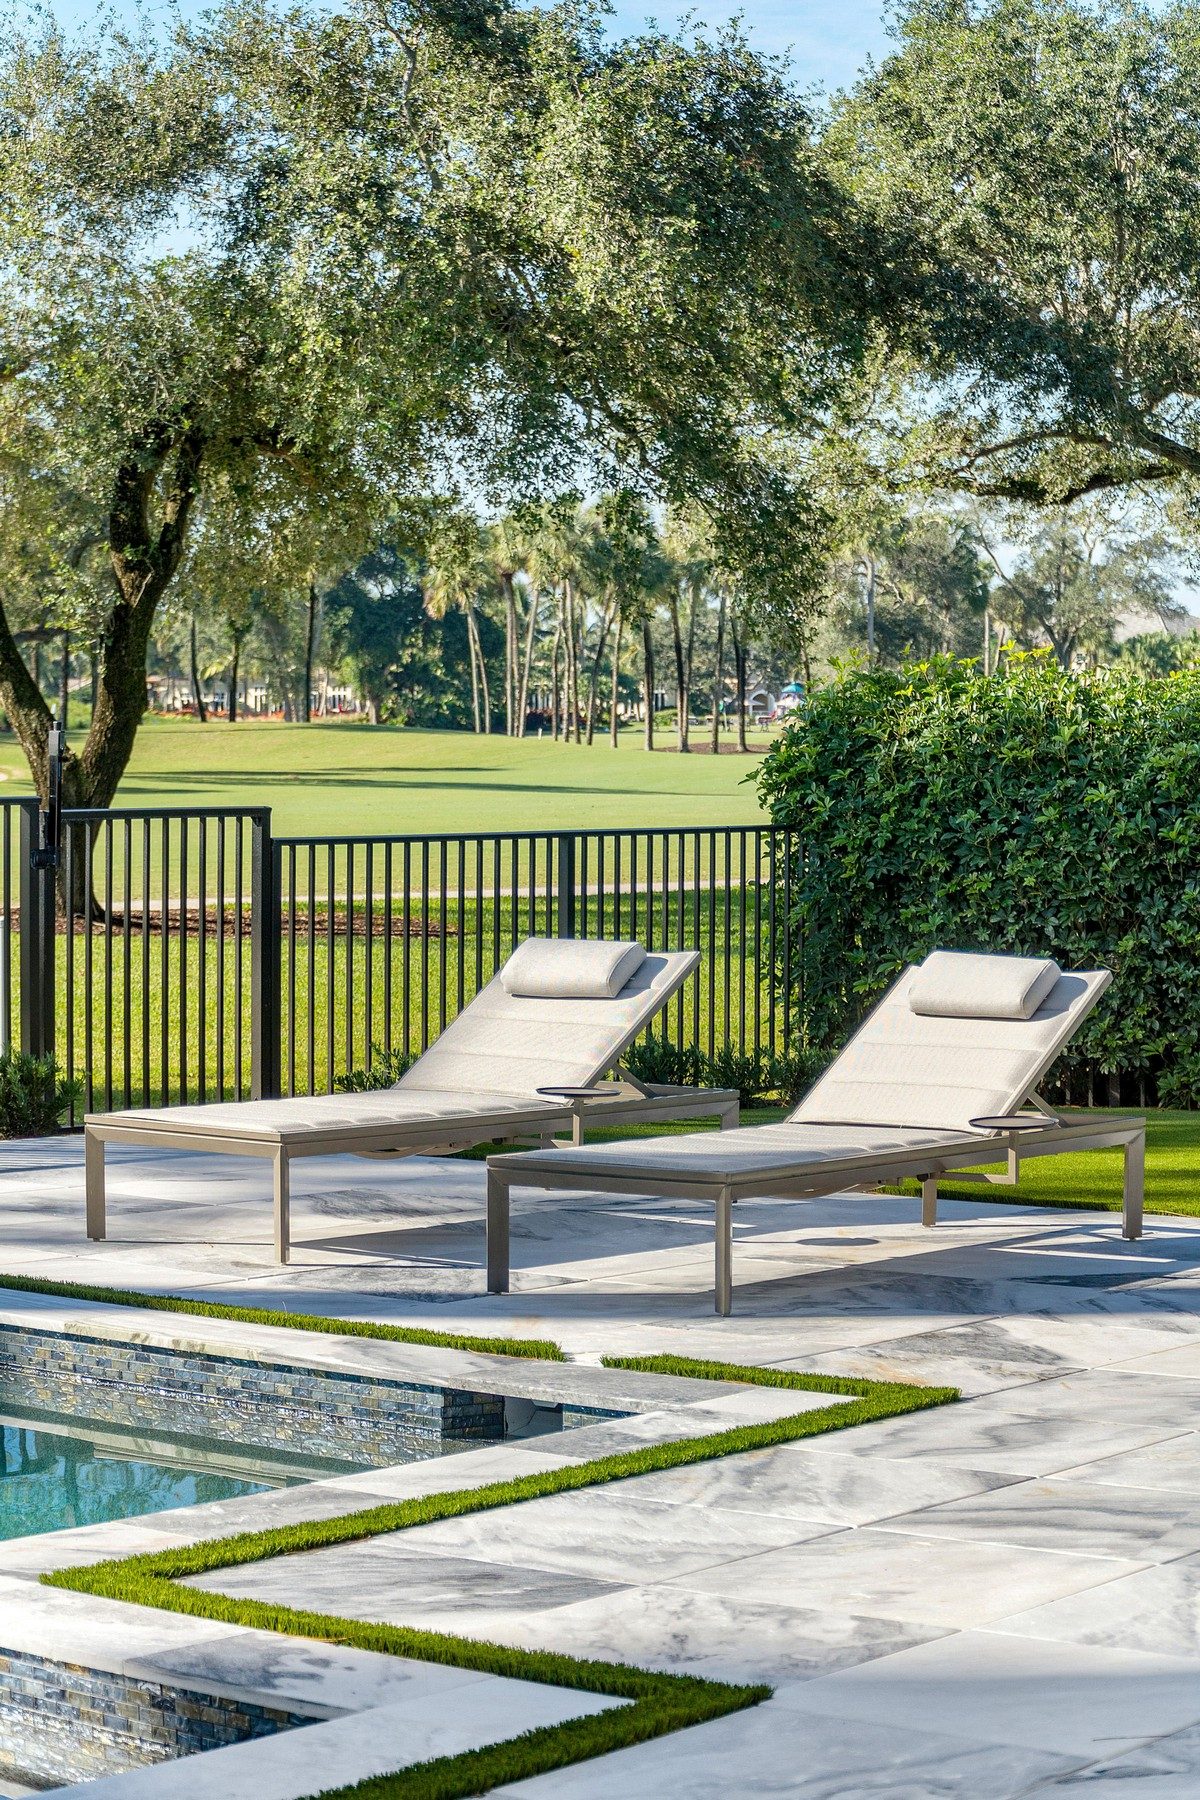 Additional photo for property listing at Exquisite Riverfront Home;  Coming Early 2020! 9265 Orchid Cove Circle Vero Beach, Florida 32963 United States